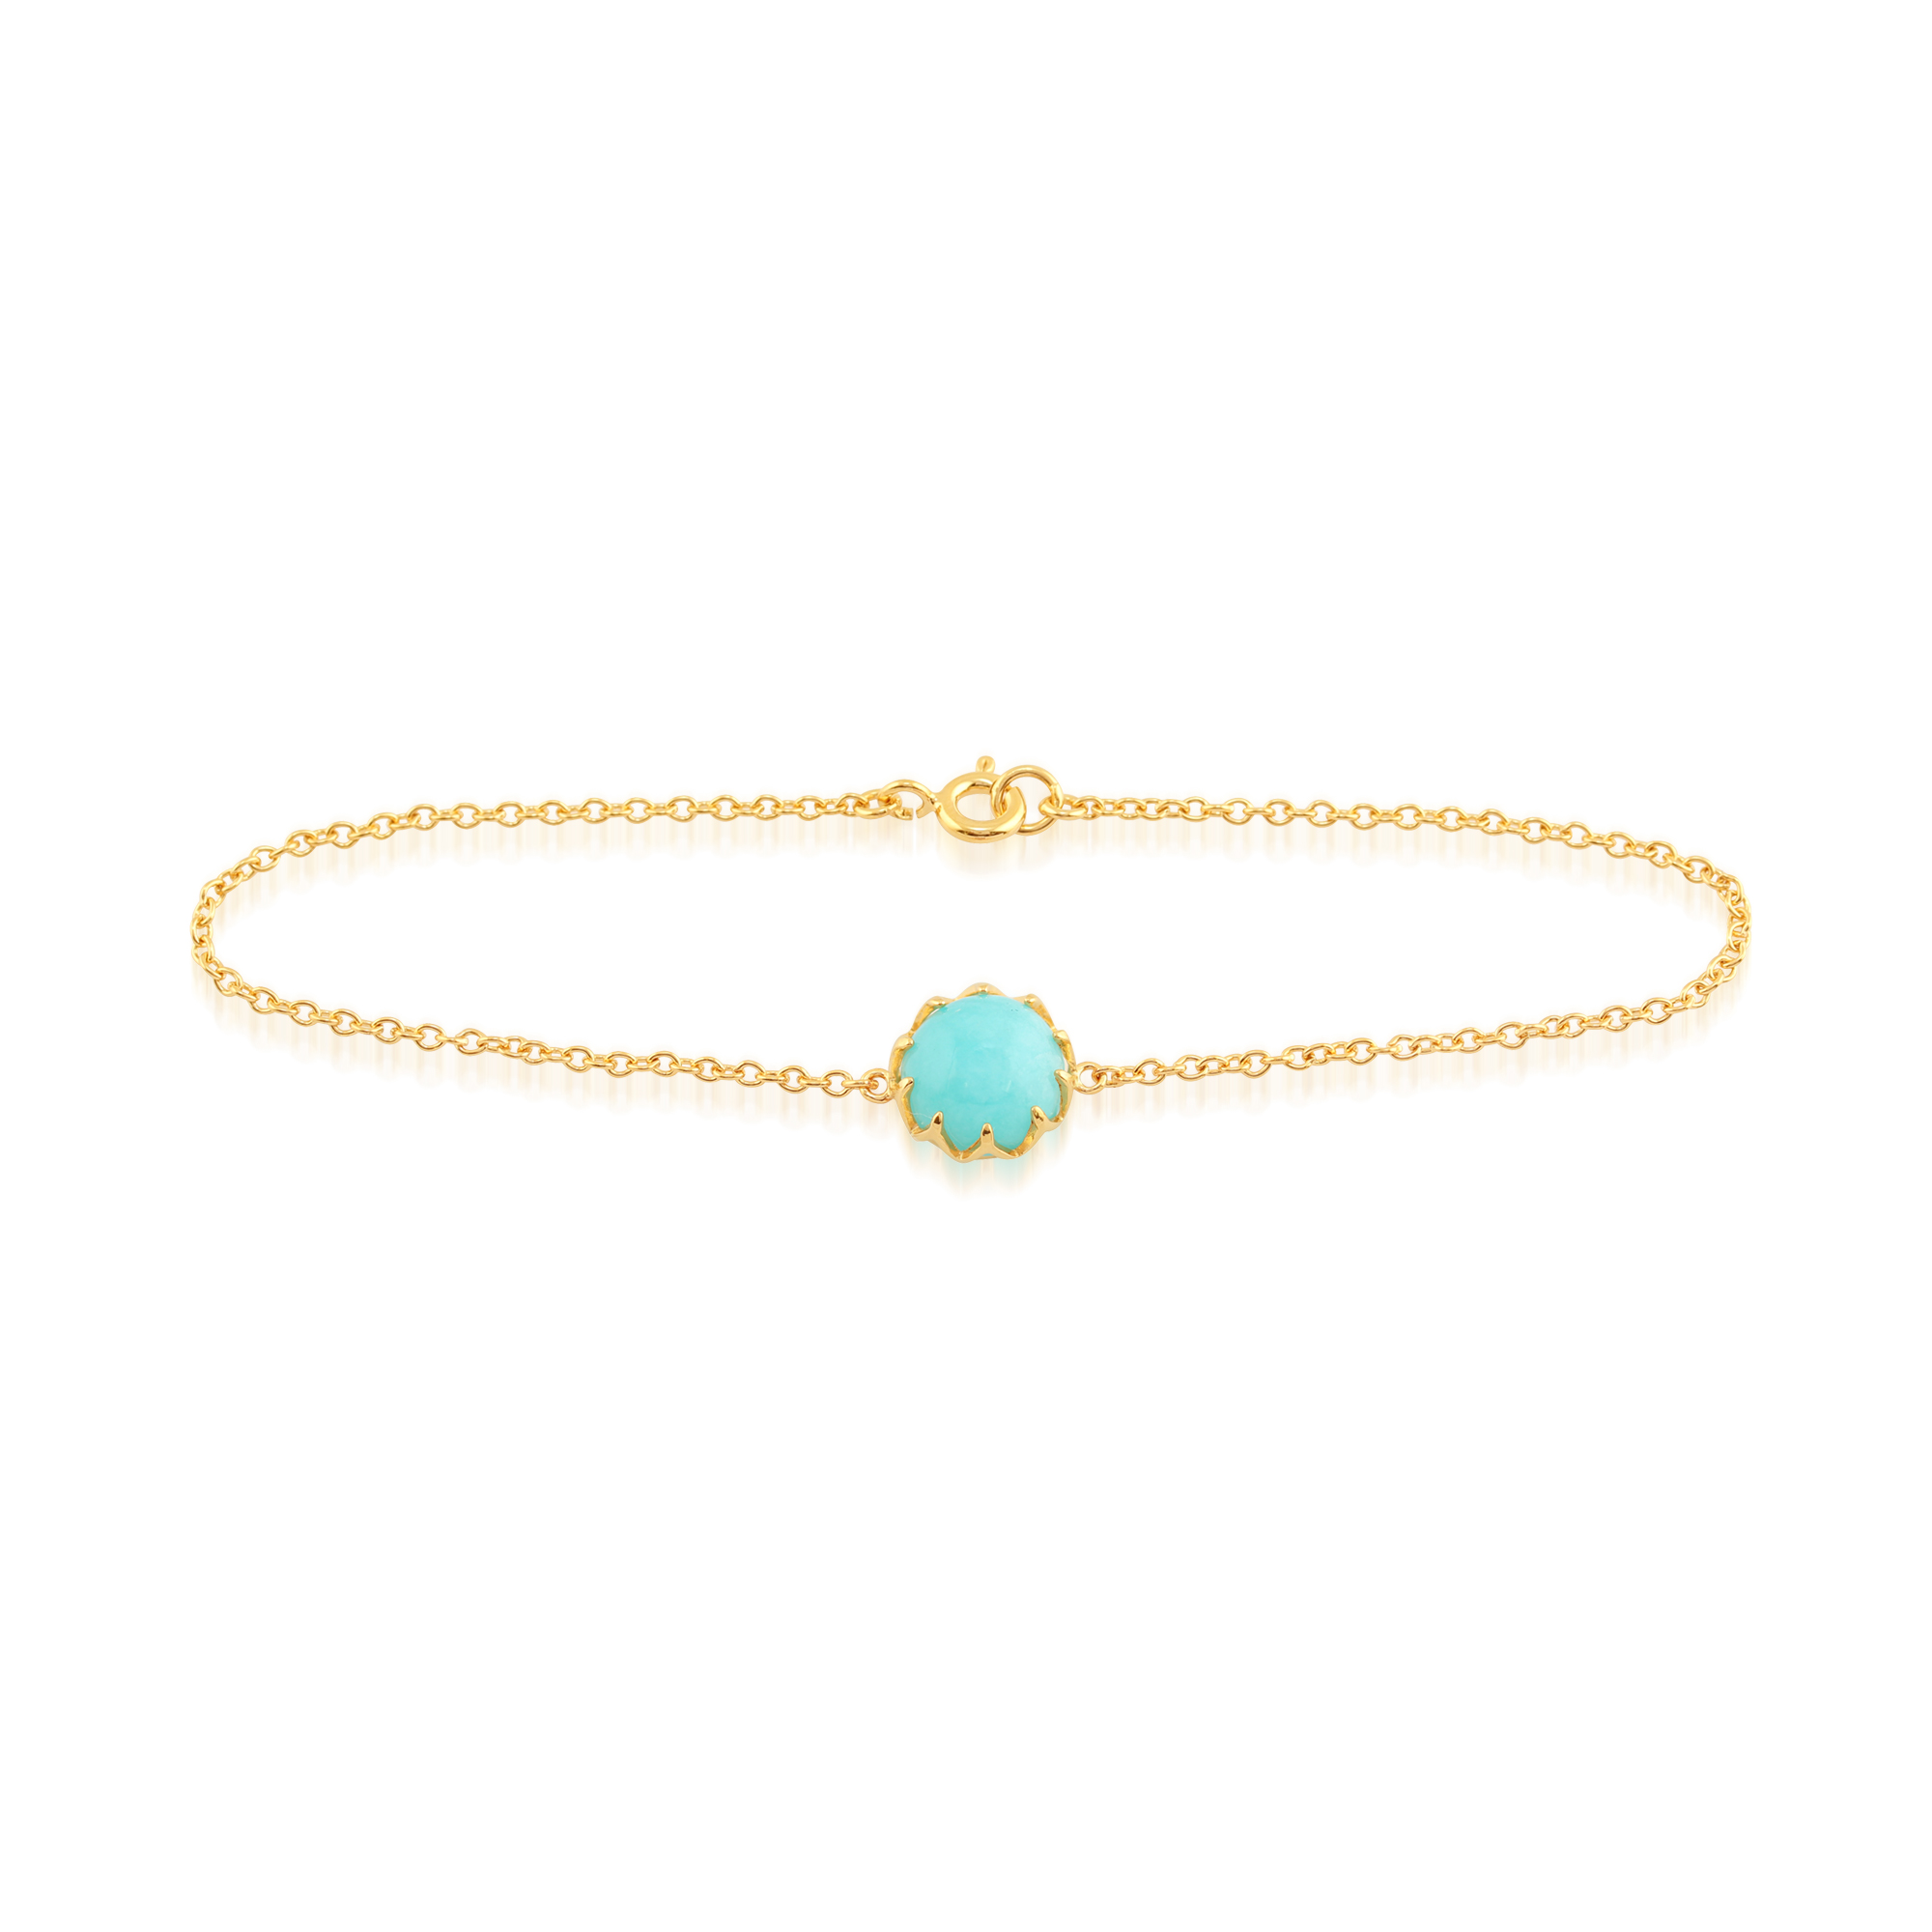 Amazonite 'Calo' Pastel Bracelet in 9ct Yellow Gold Plated Sterling Silver